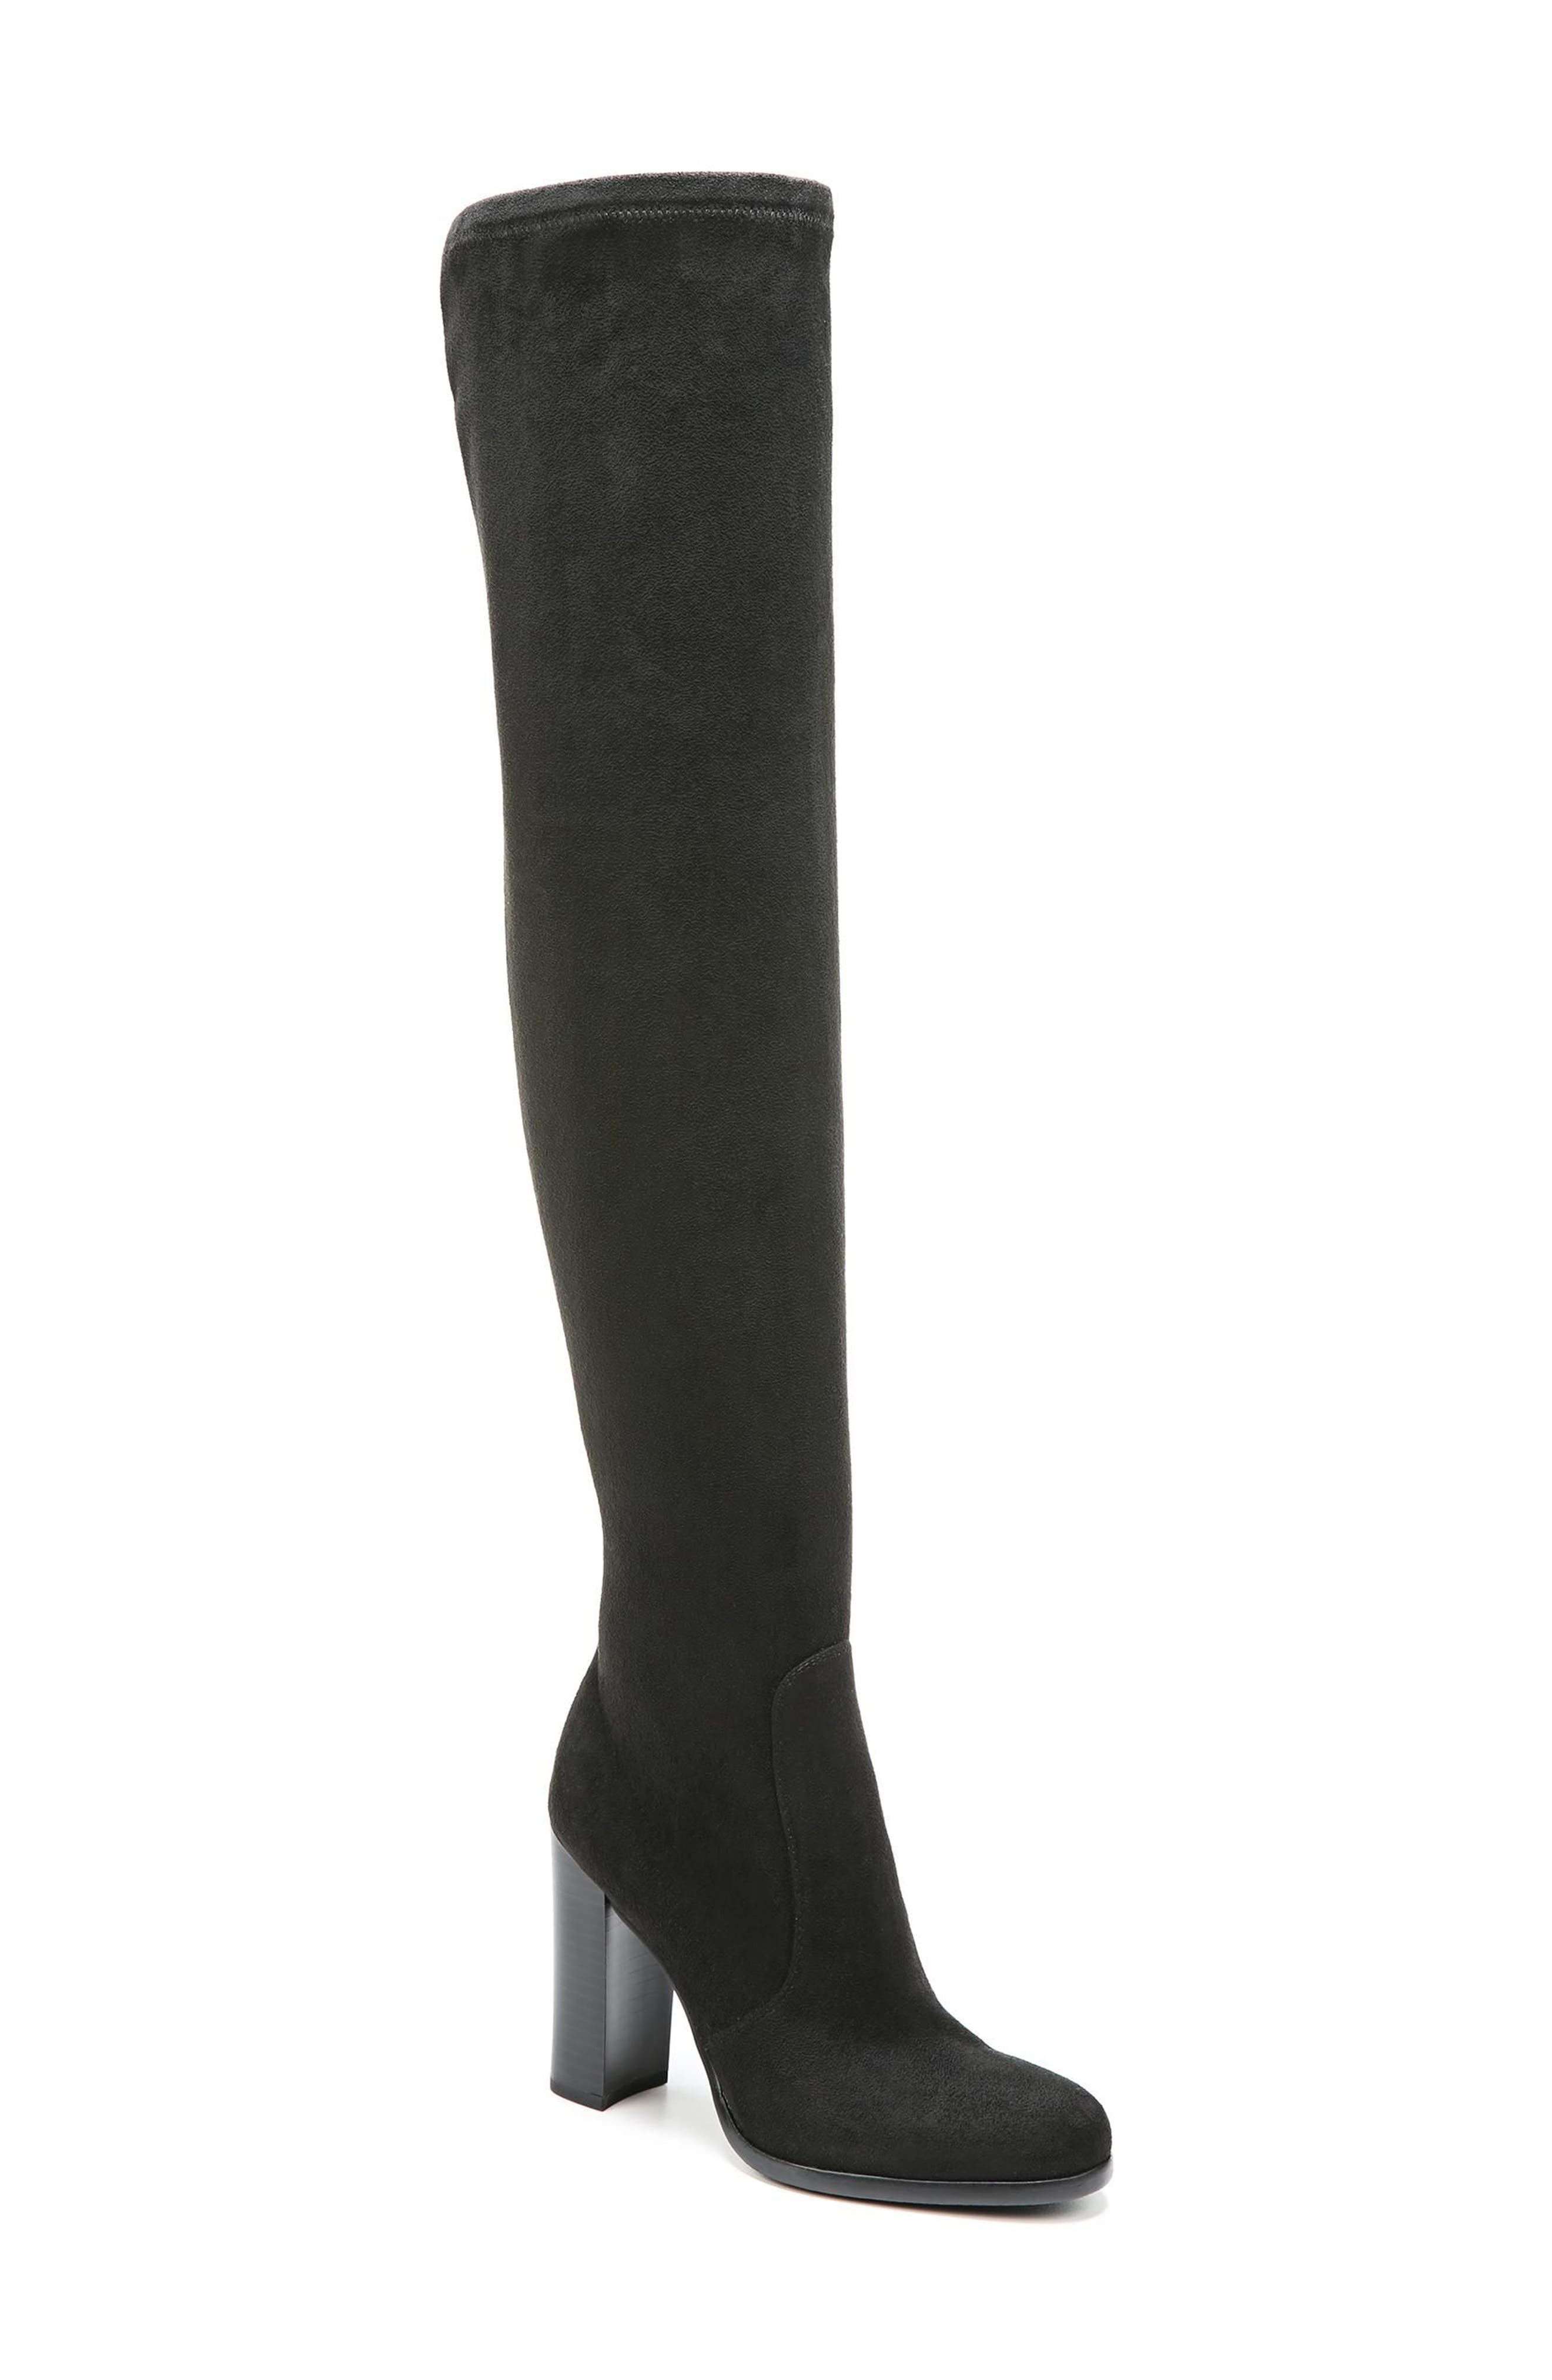 Vena 2 Over the Knee Boot,                             Main thumbnail 1, color,                             002